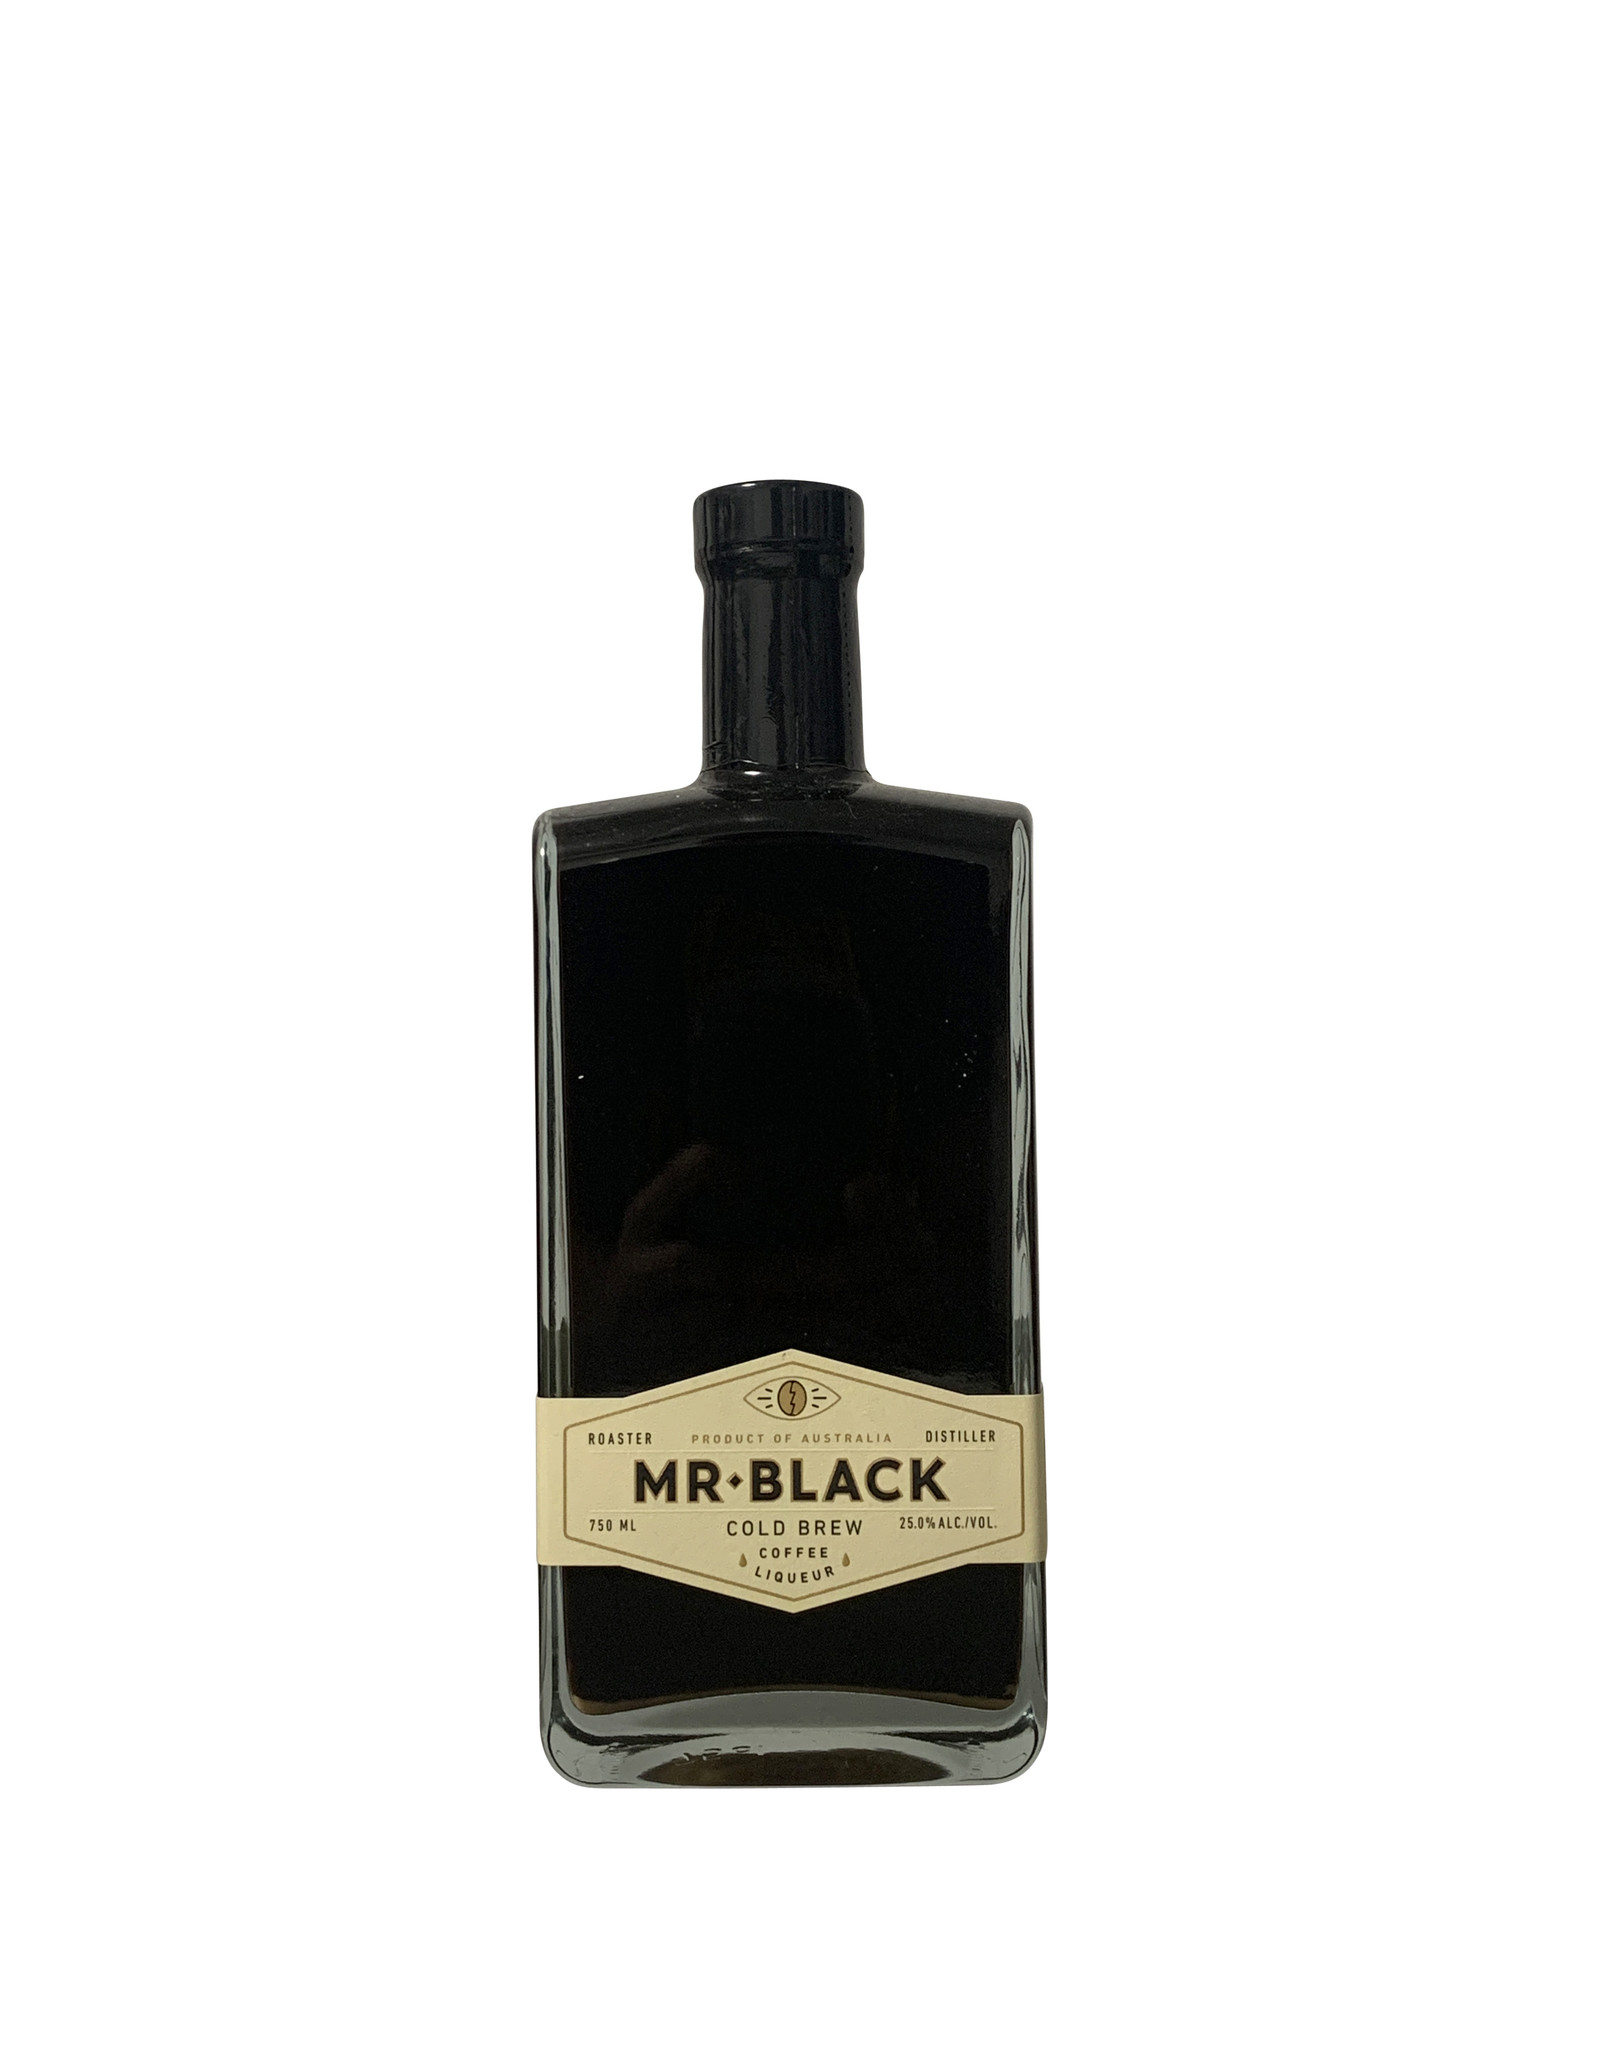 Mr. Black Mr. Black Cold Brew Coffee Liqueur, Australia (750mL)